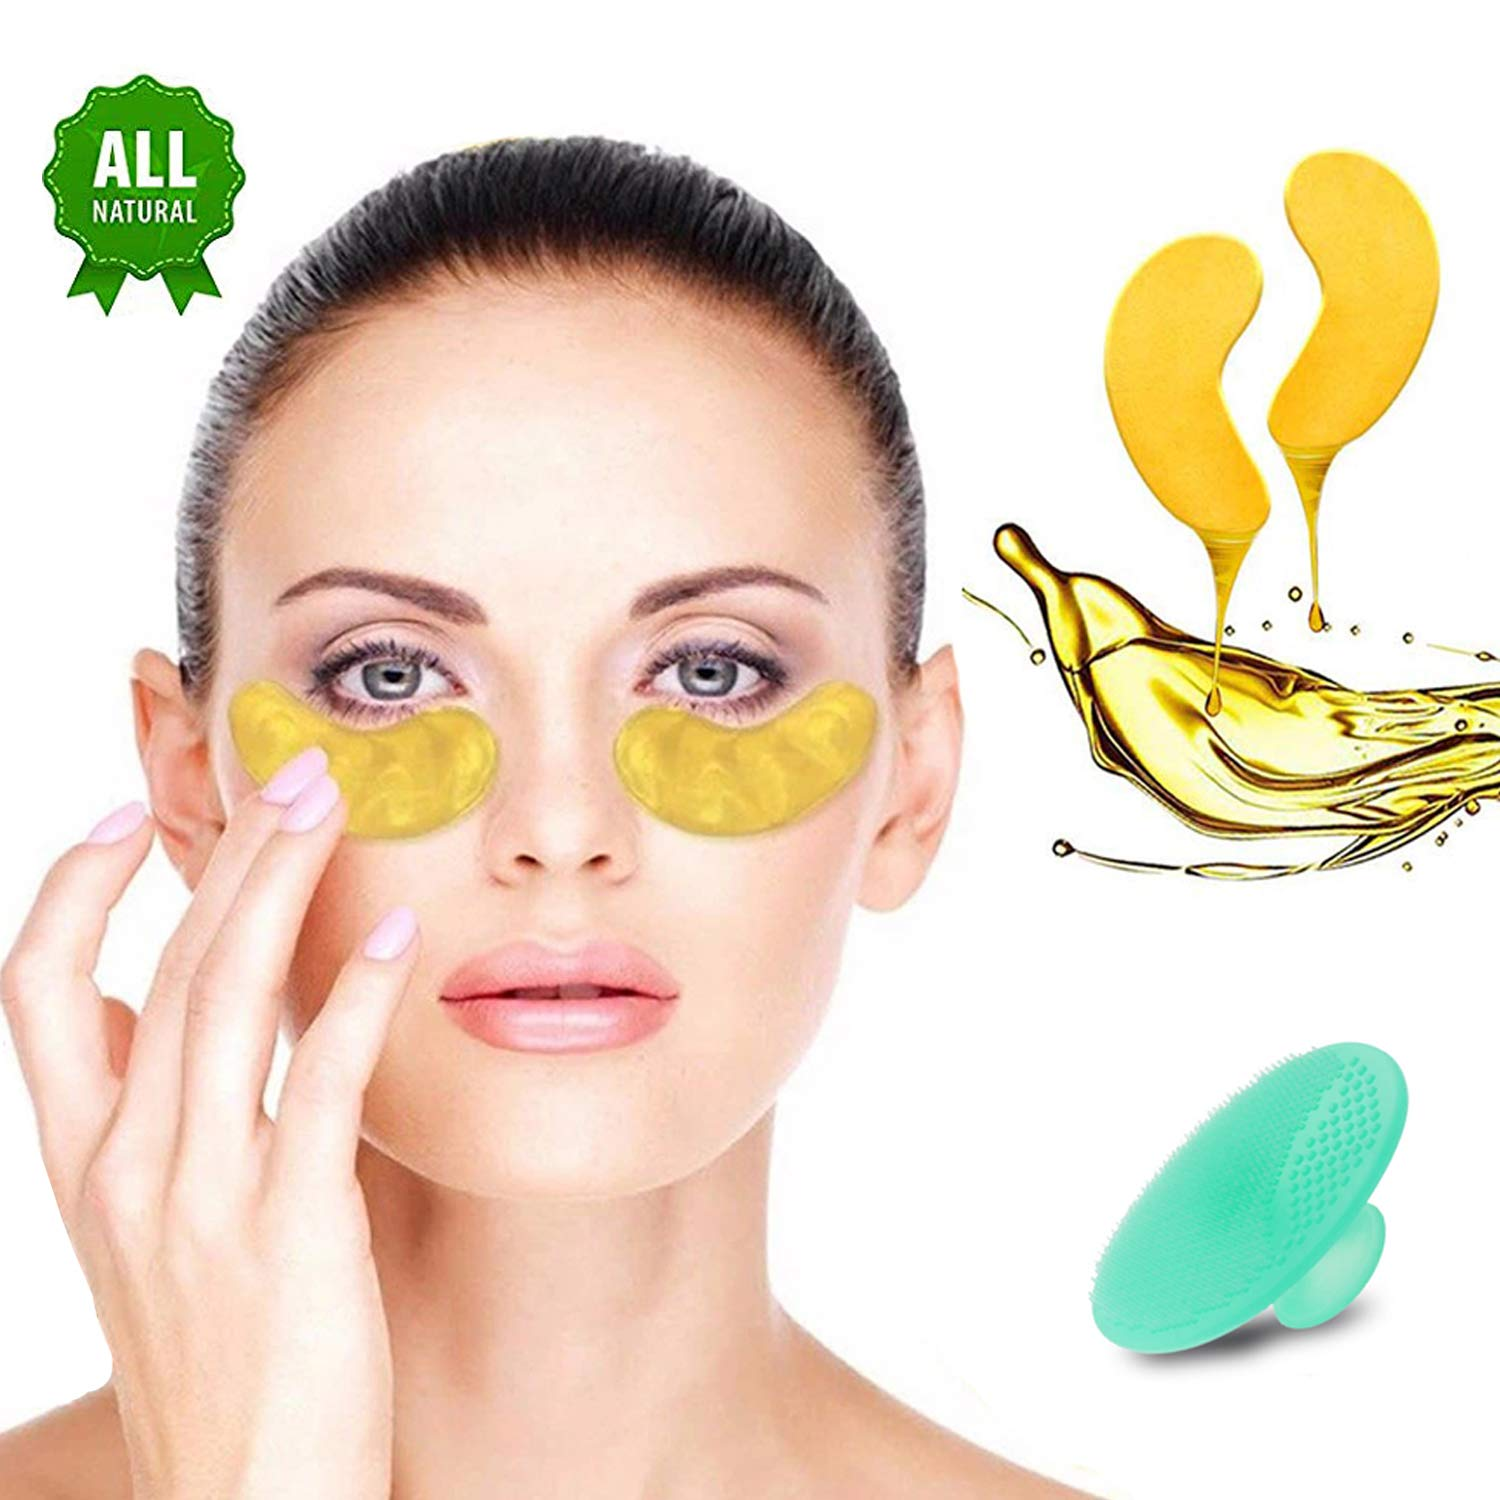 Gold Eye Mask 24K Gold Eye Treatment - Anti-Aging Hyaluronic Acid Under Eye Mask & Patches for Moisturizing & Reducing Dark Circles Puffiness Wrinkles - Eyes Collagen Eye Pads, Set of 12 Pairs